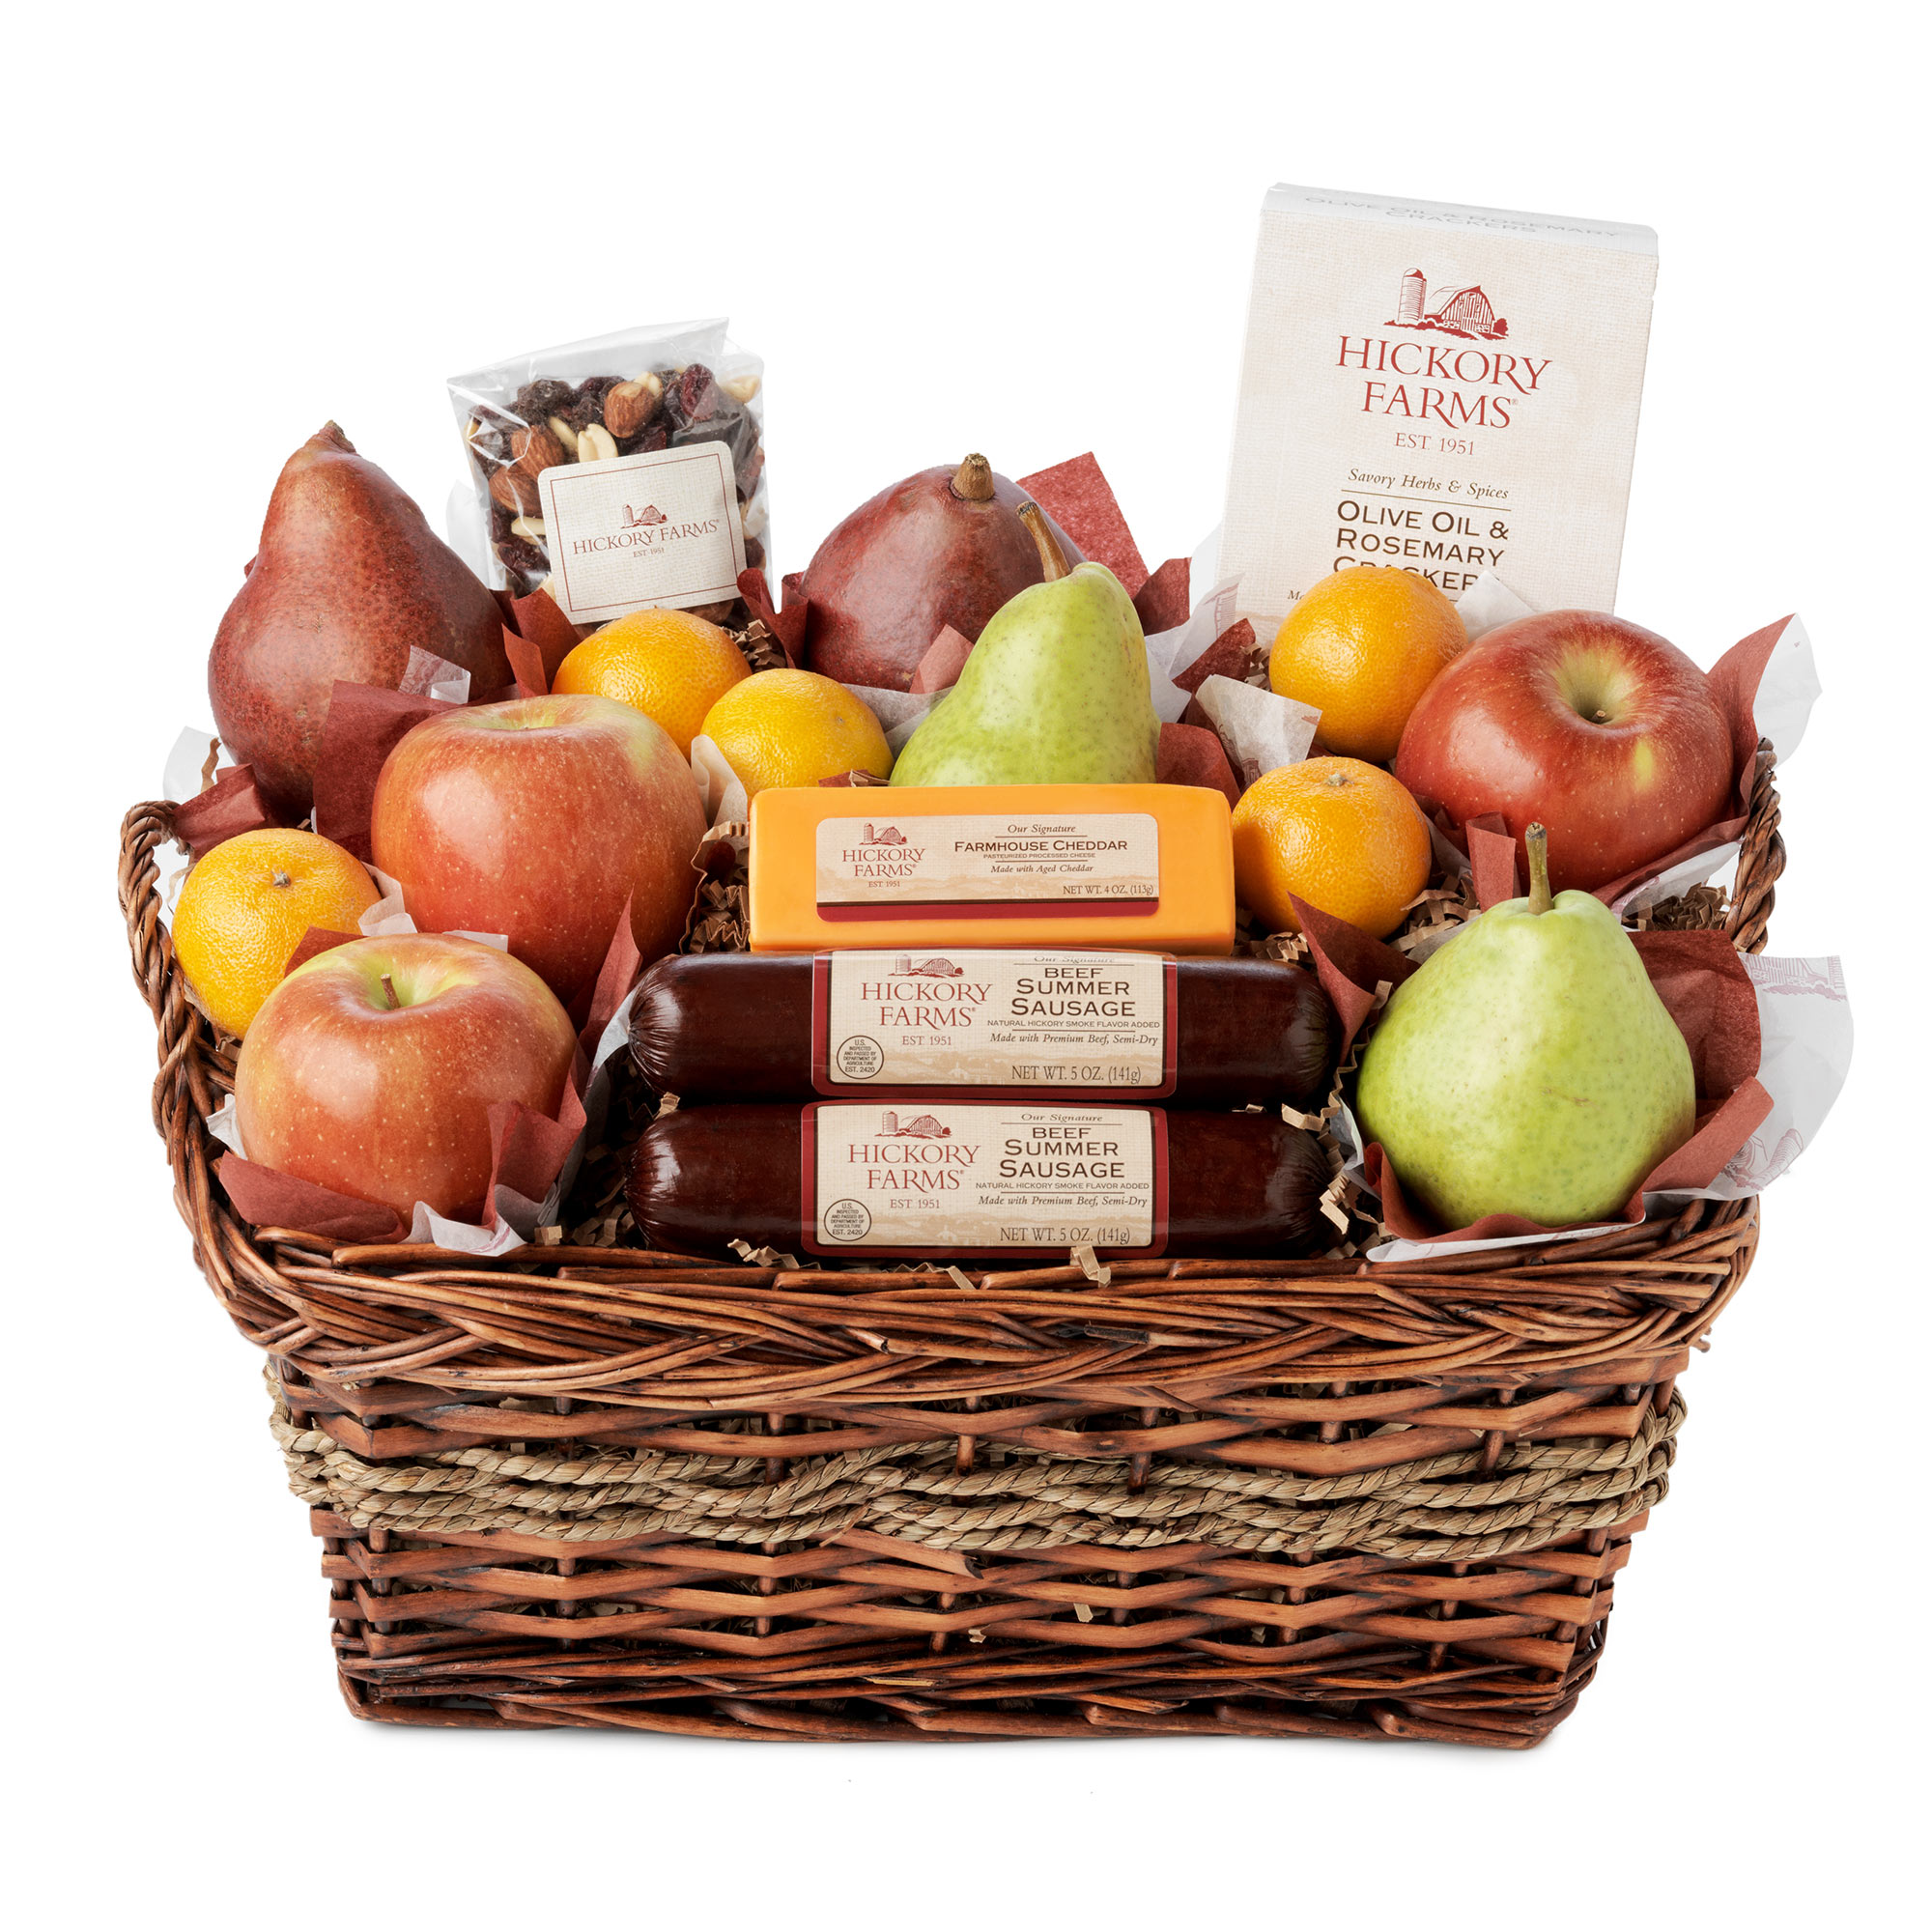 Orchards bounty gift basket gift purchase our wine gift baskets hickory farms orchards bounty gift basket negle Gallery